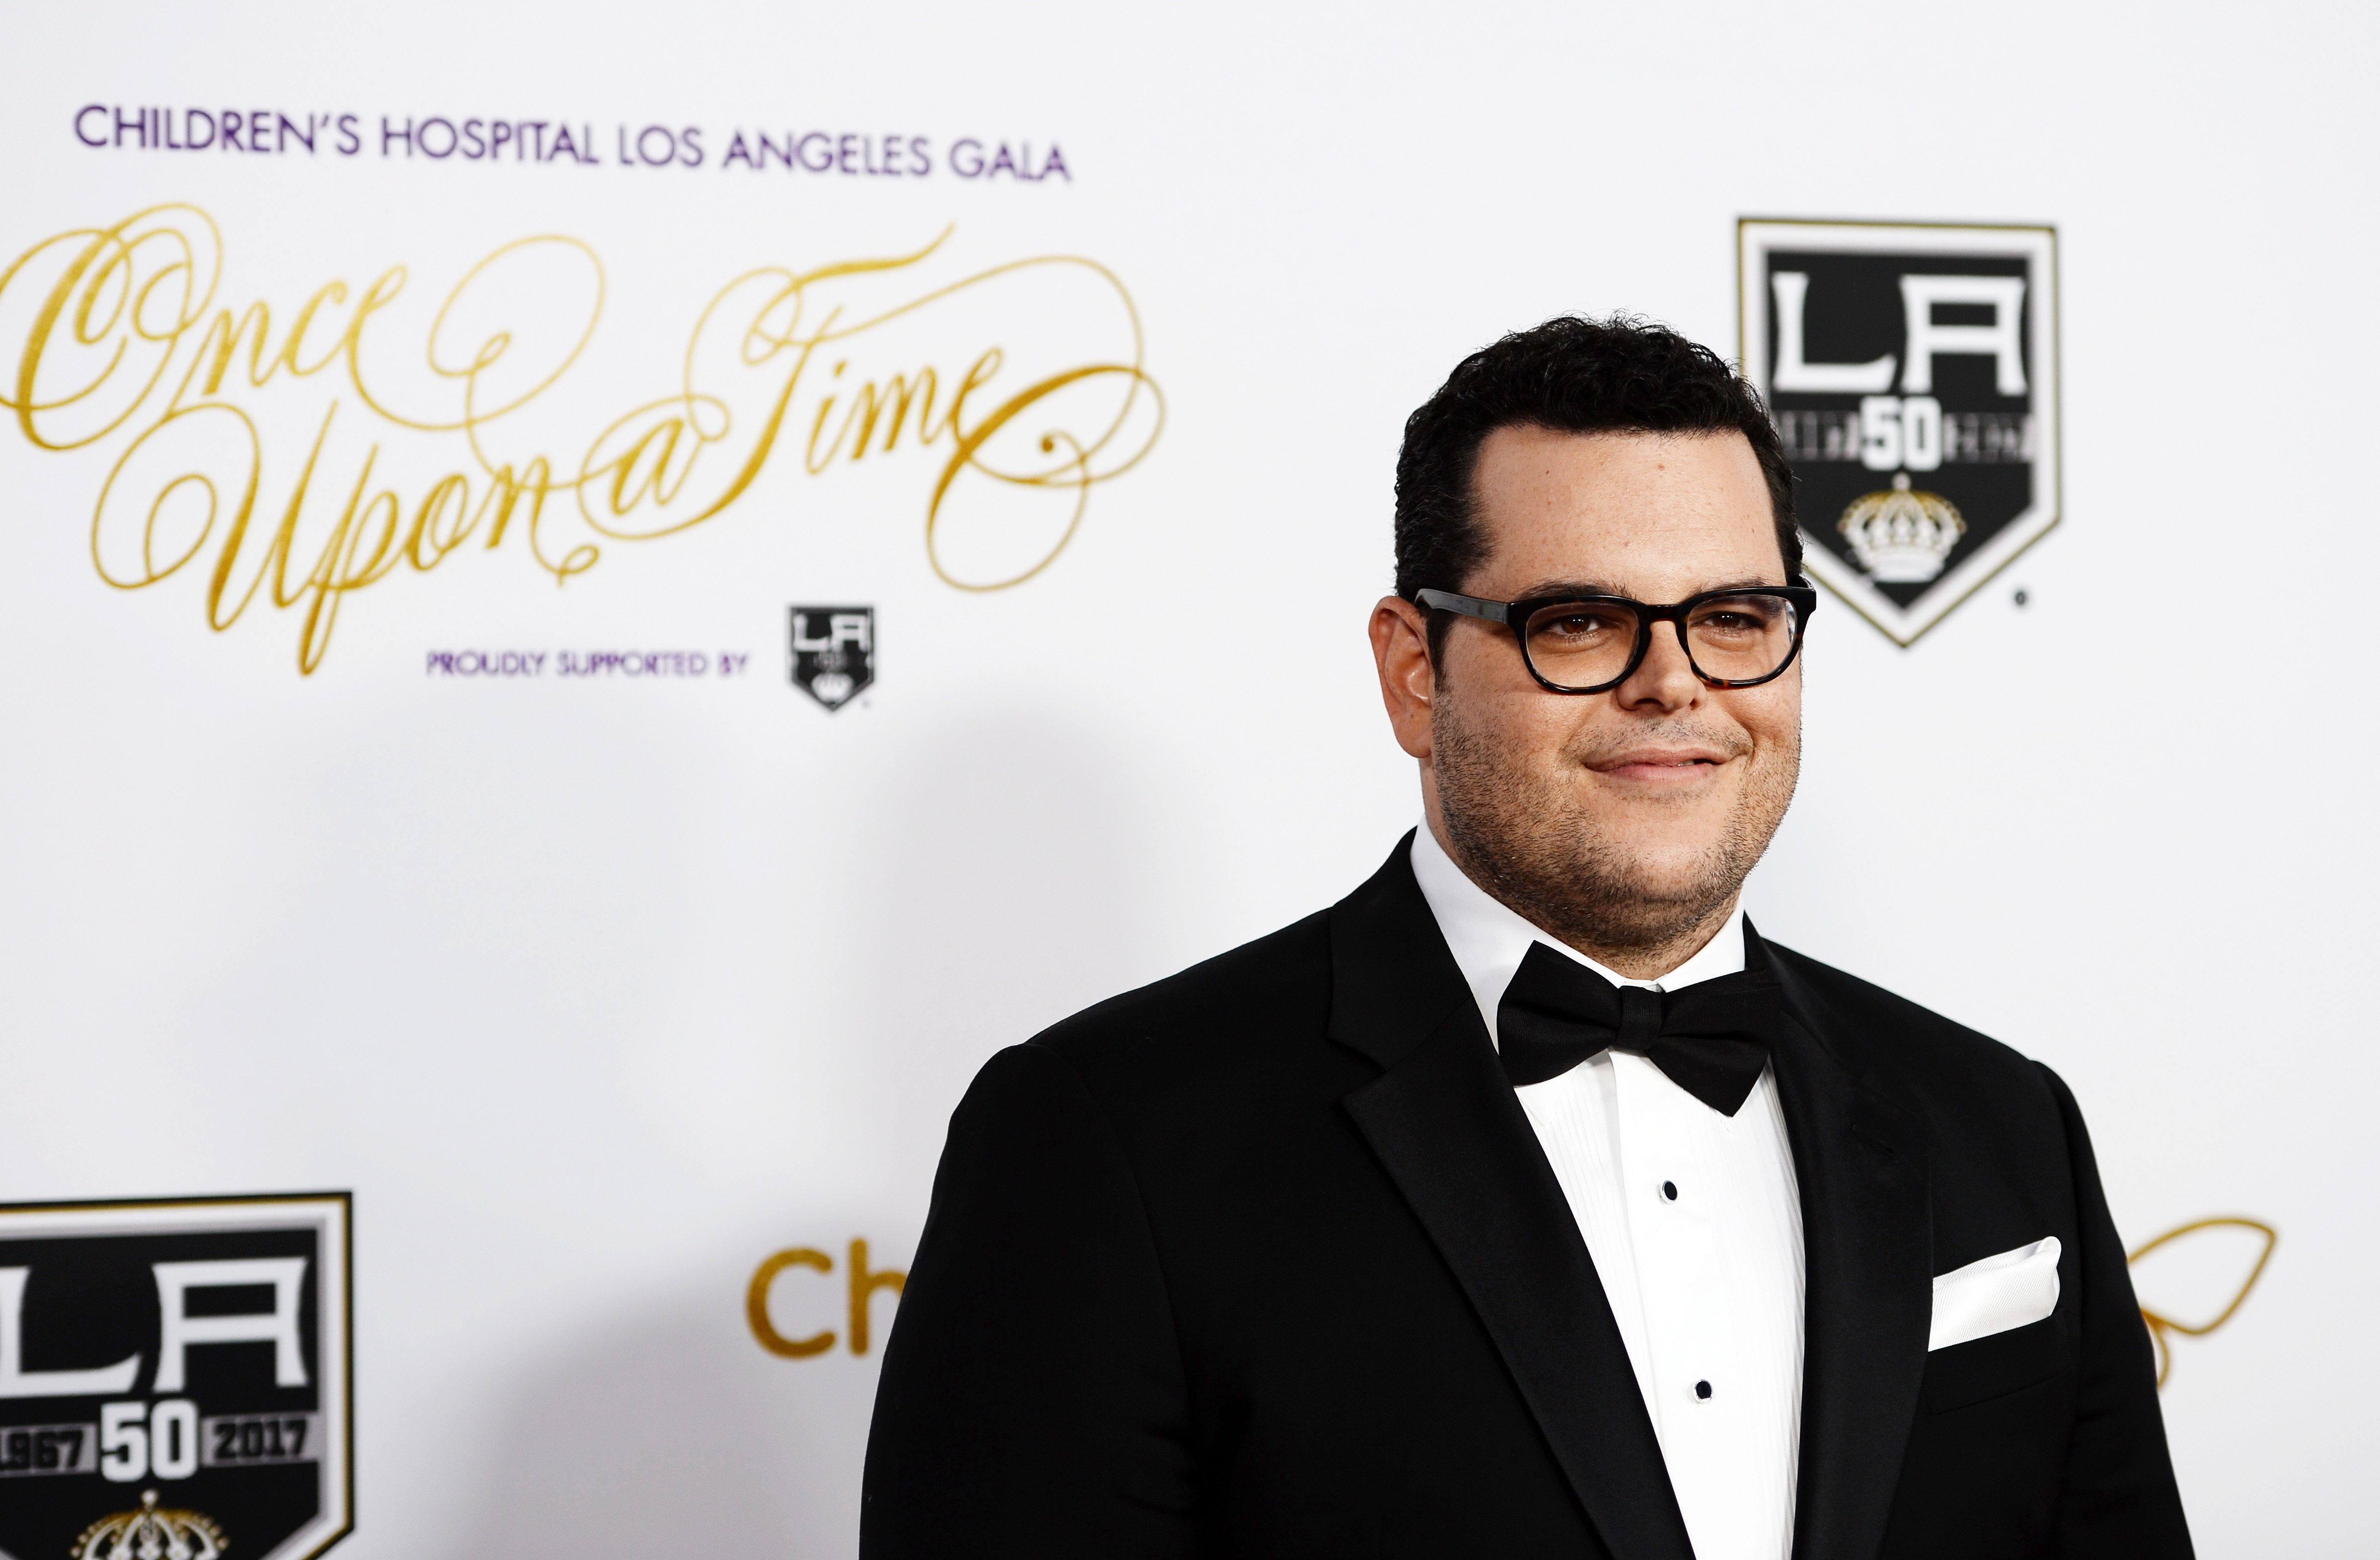 LOS ANGELES, CA - OCTOBER 15:  Actor Josh Gad arrives at the 2016 Children's Hospital Los Angeles 'Once Upon a Time' Gala at the L.A. Live Event Deck on October 15, 2016 in Los Angeles, California.  (Photo by Amanda Edwards/WireImage)